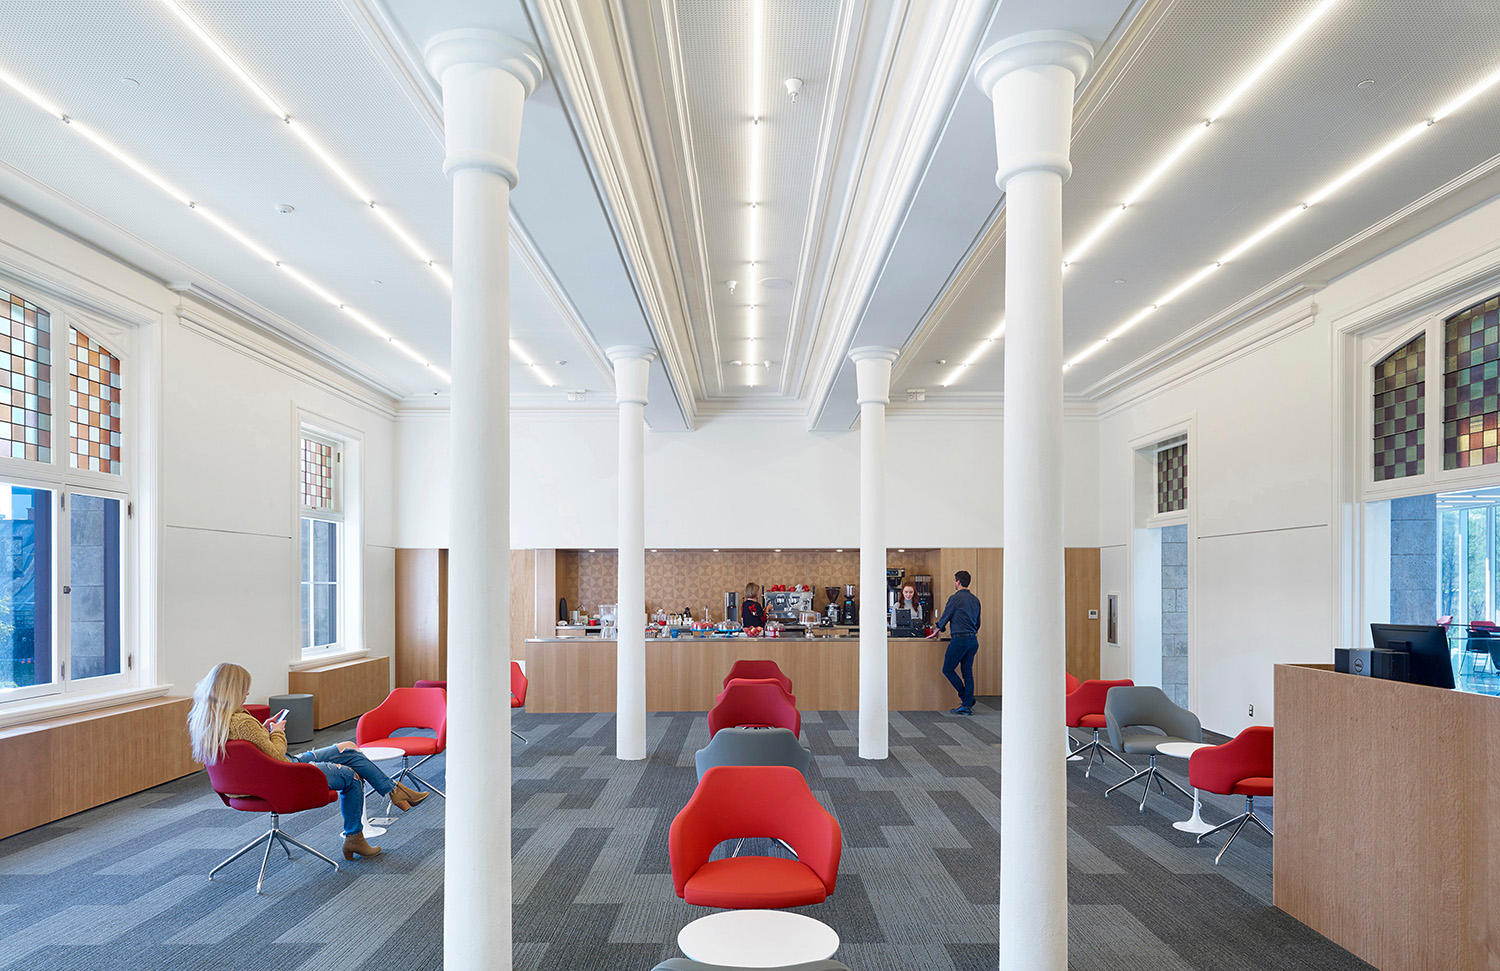 In the heart of the building, the comfortable Reading Room Café, with a fully-equipped kitchen, adjoins the new pavilion. Integrating food services into a library space helps draw in new users and enables  Tom Arban